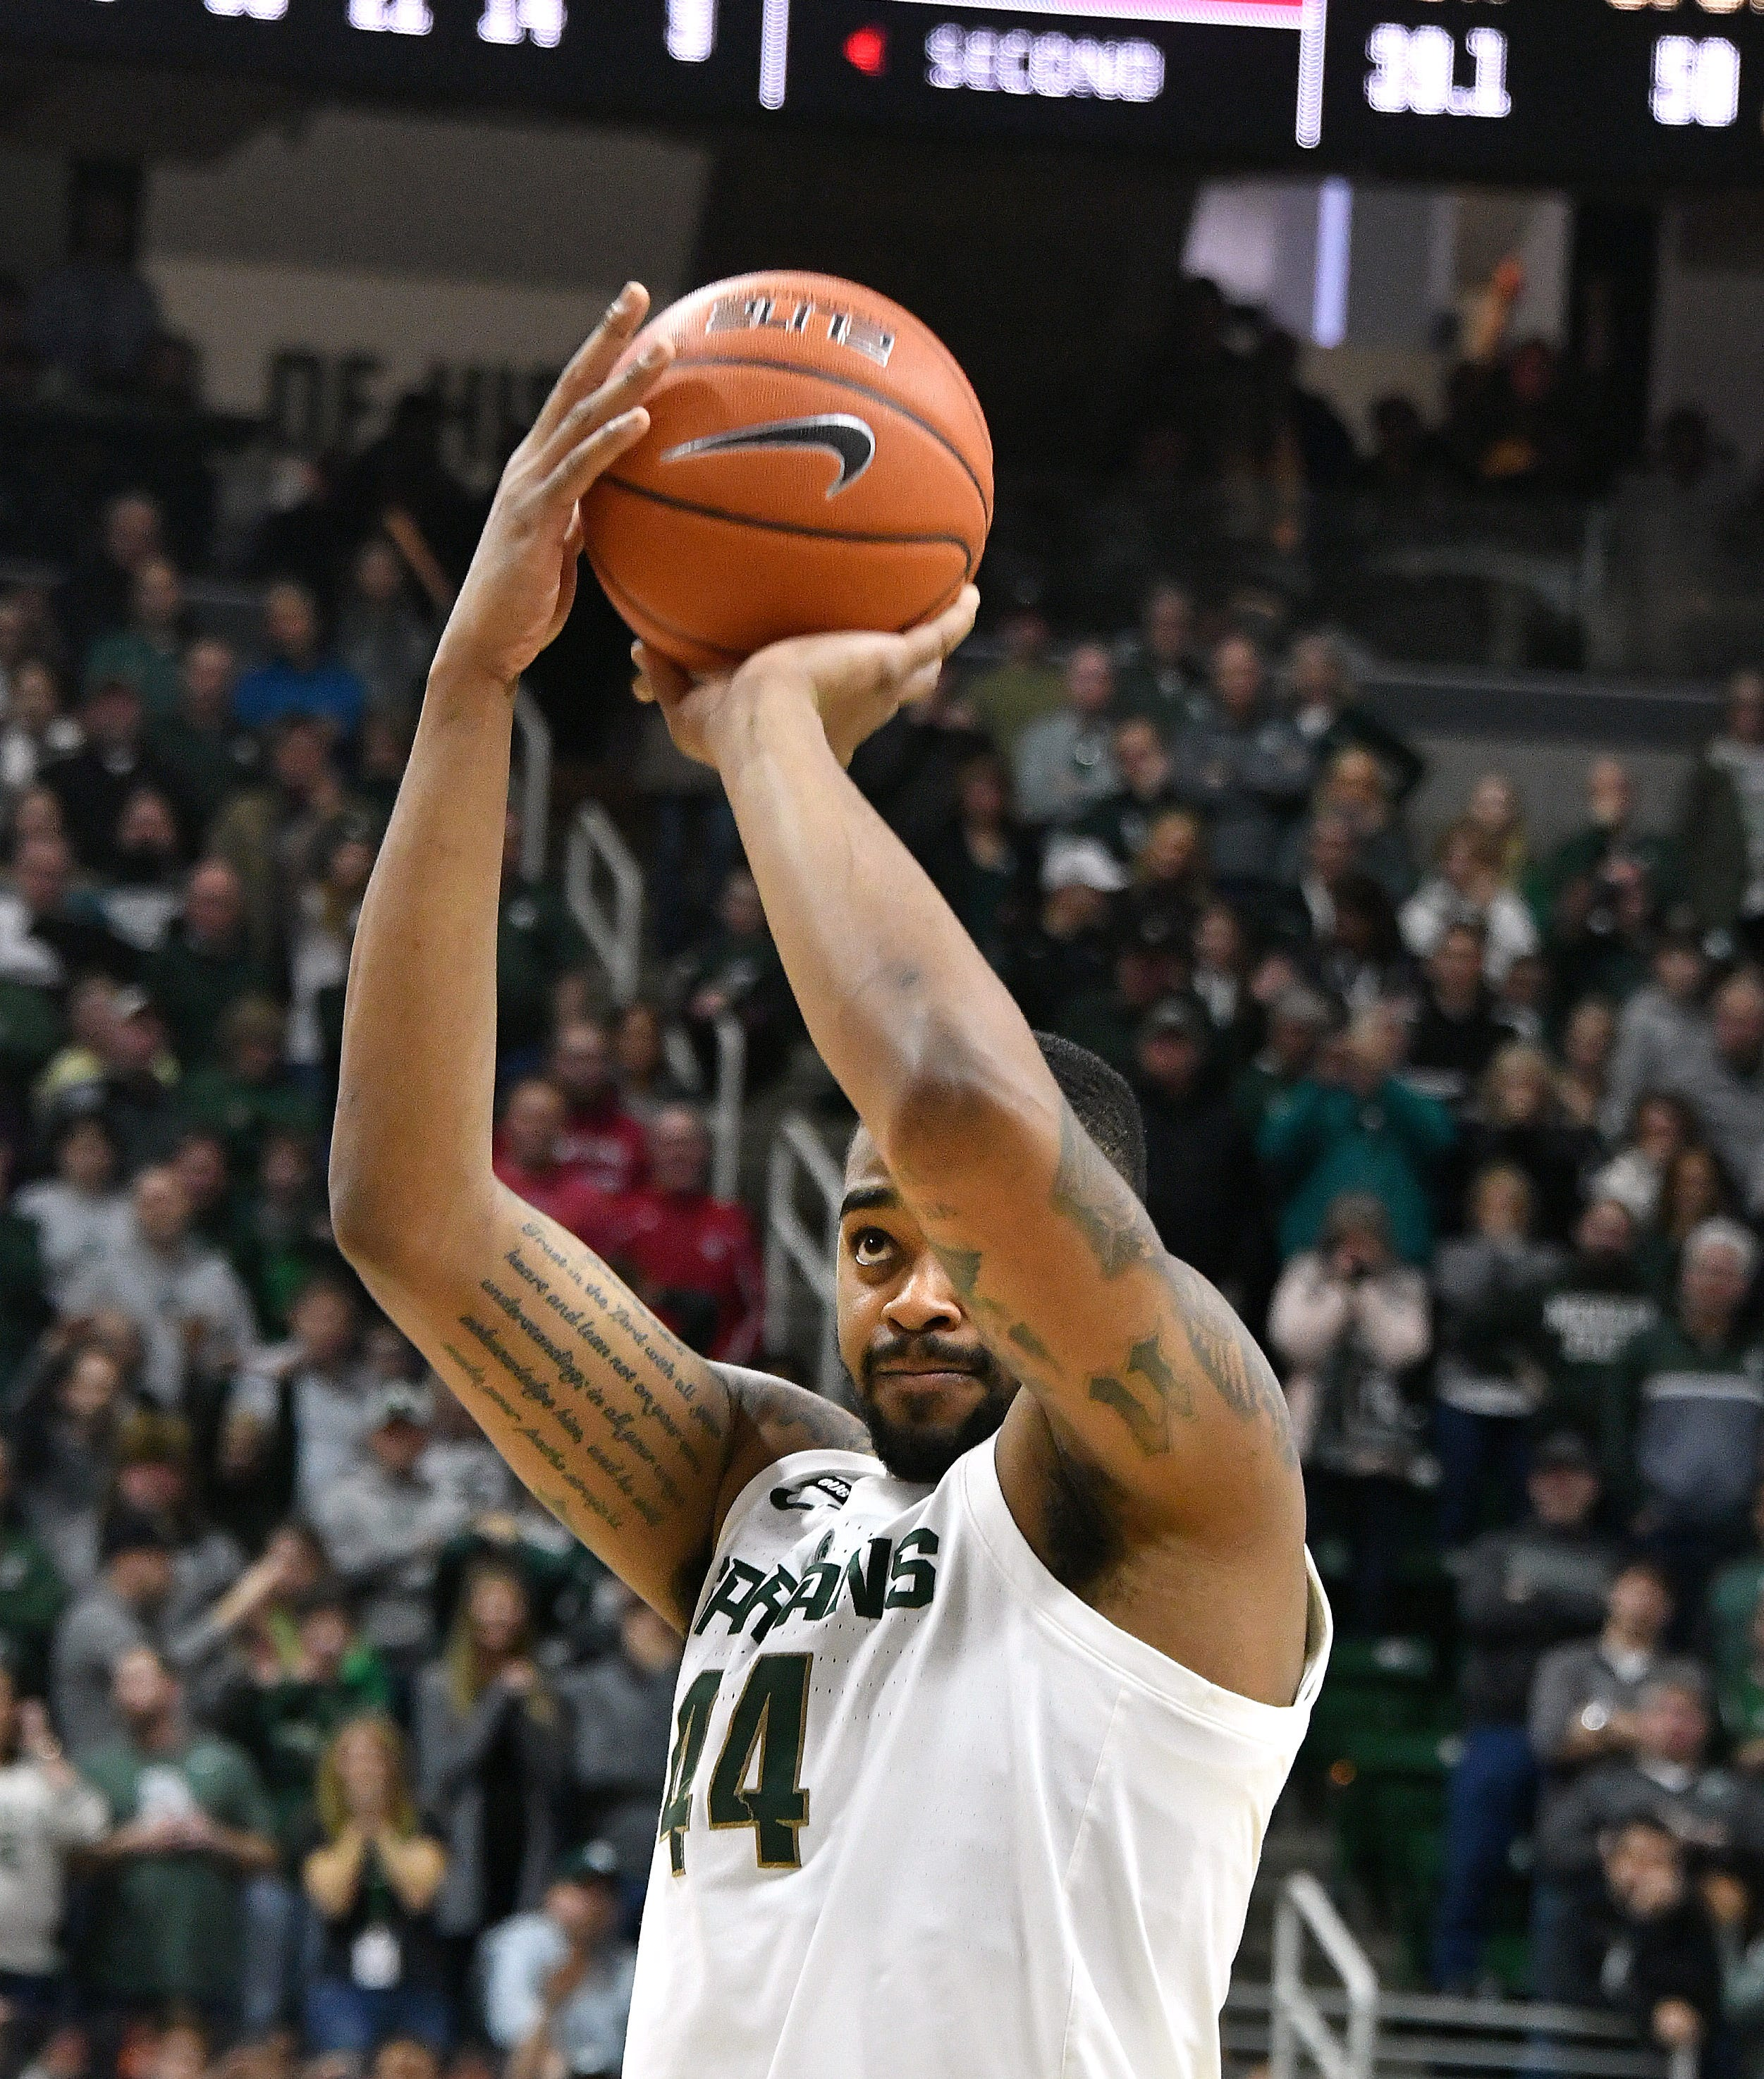 Michigan State's Nick Ward went 1-of-9 from the free-throw line in Saturday's 79-75 overtime loss to Indiana.